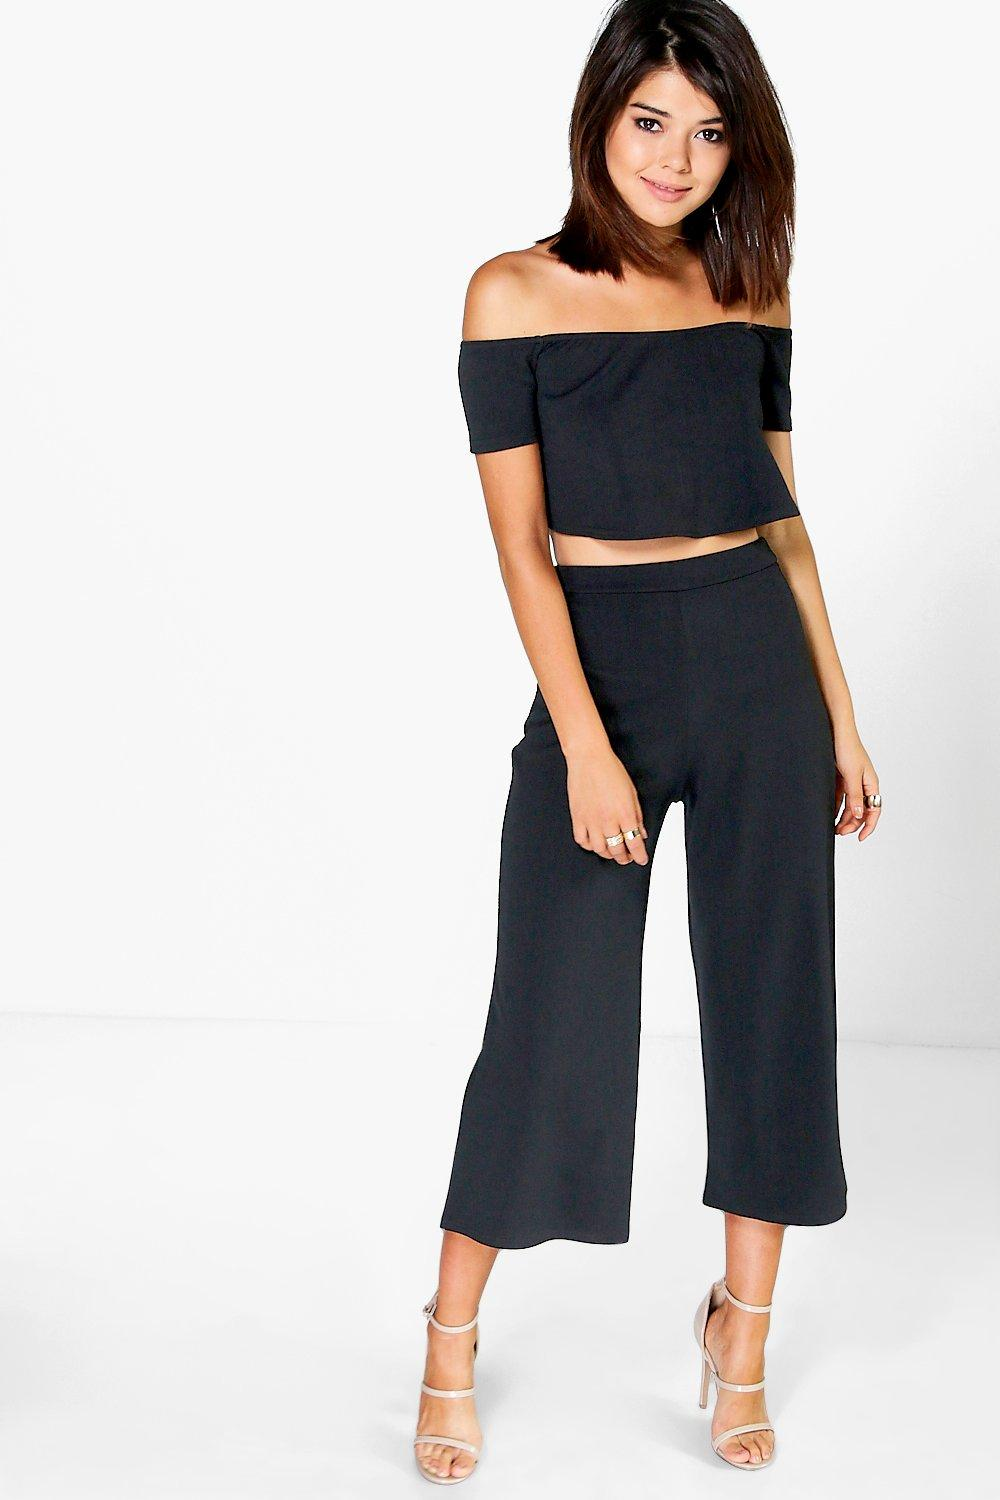 Lexi Off The Shoulder Top And Culotte Co-Ord Set